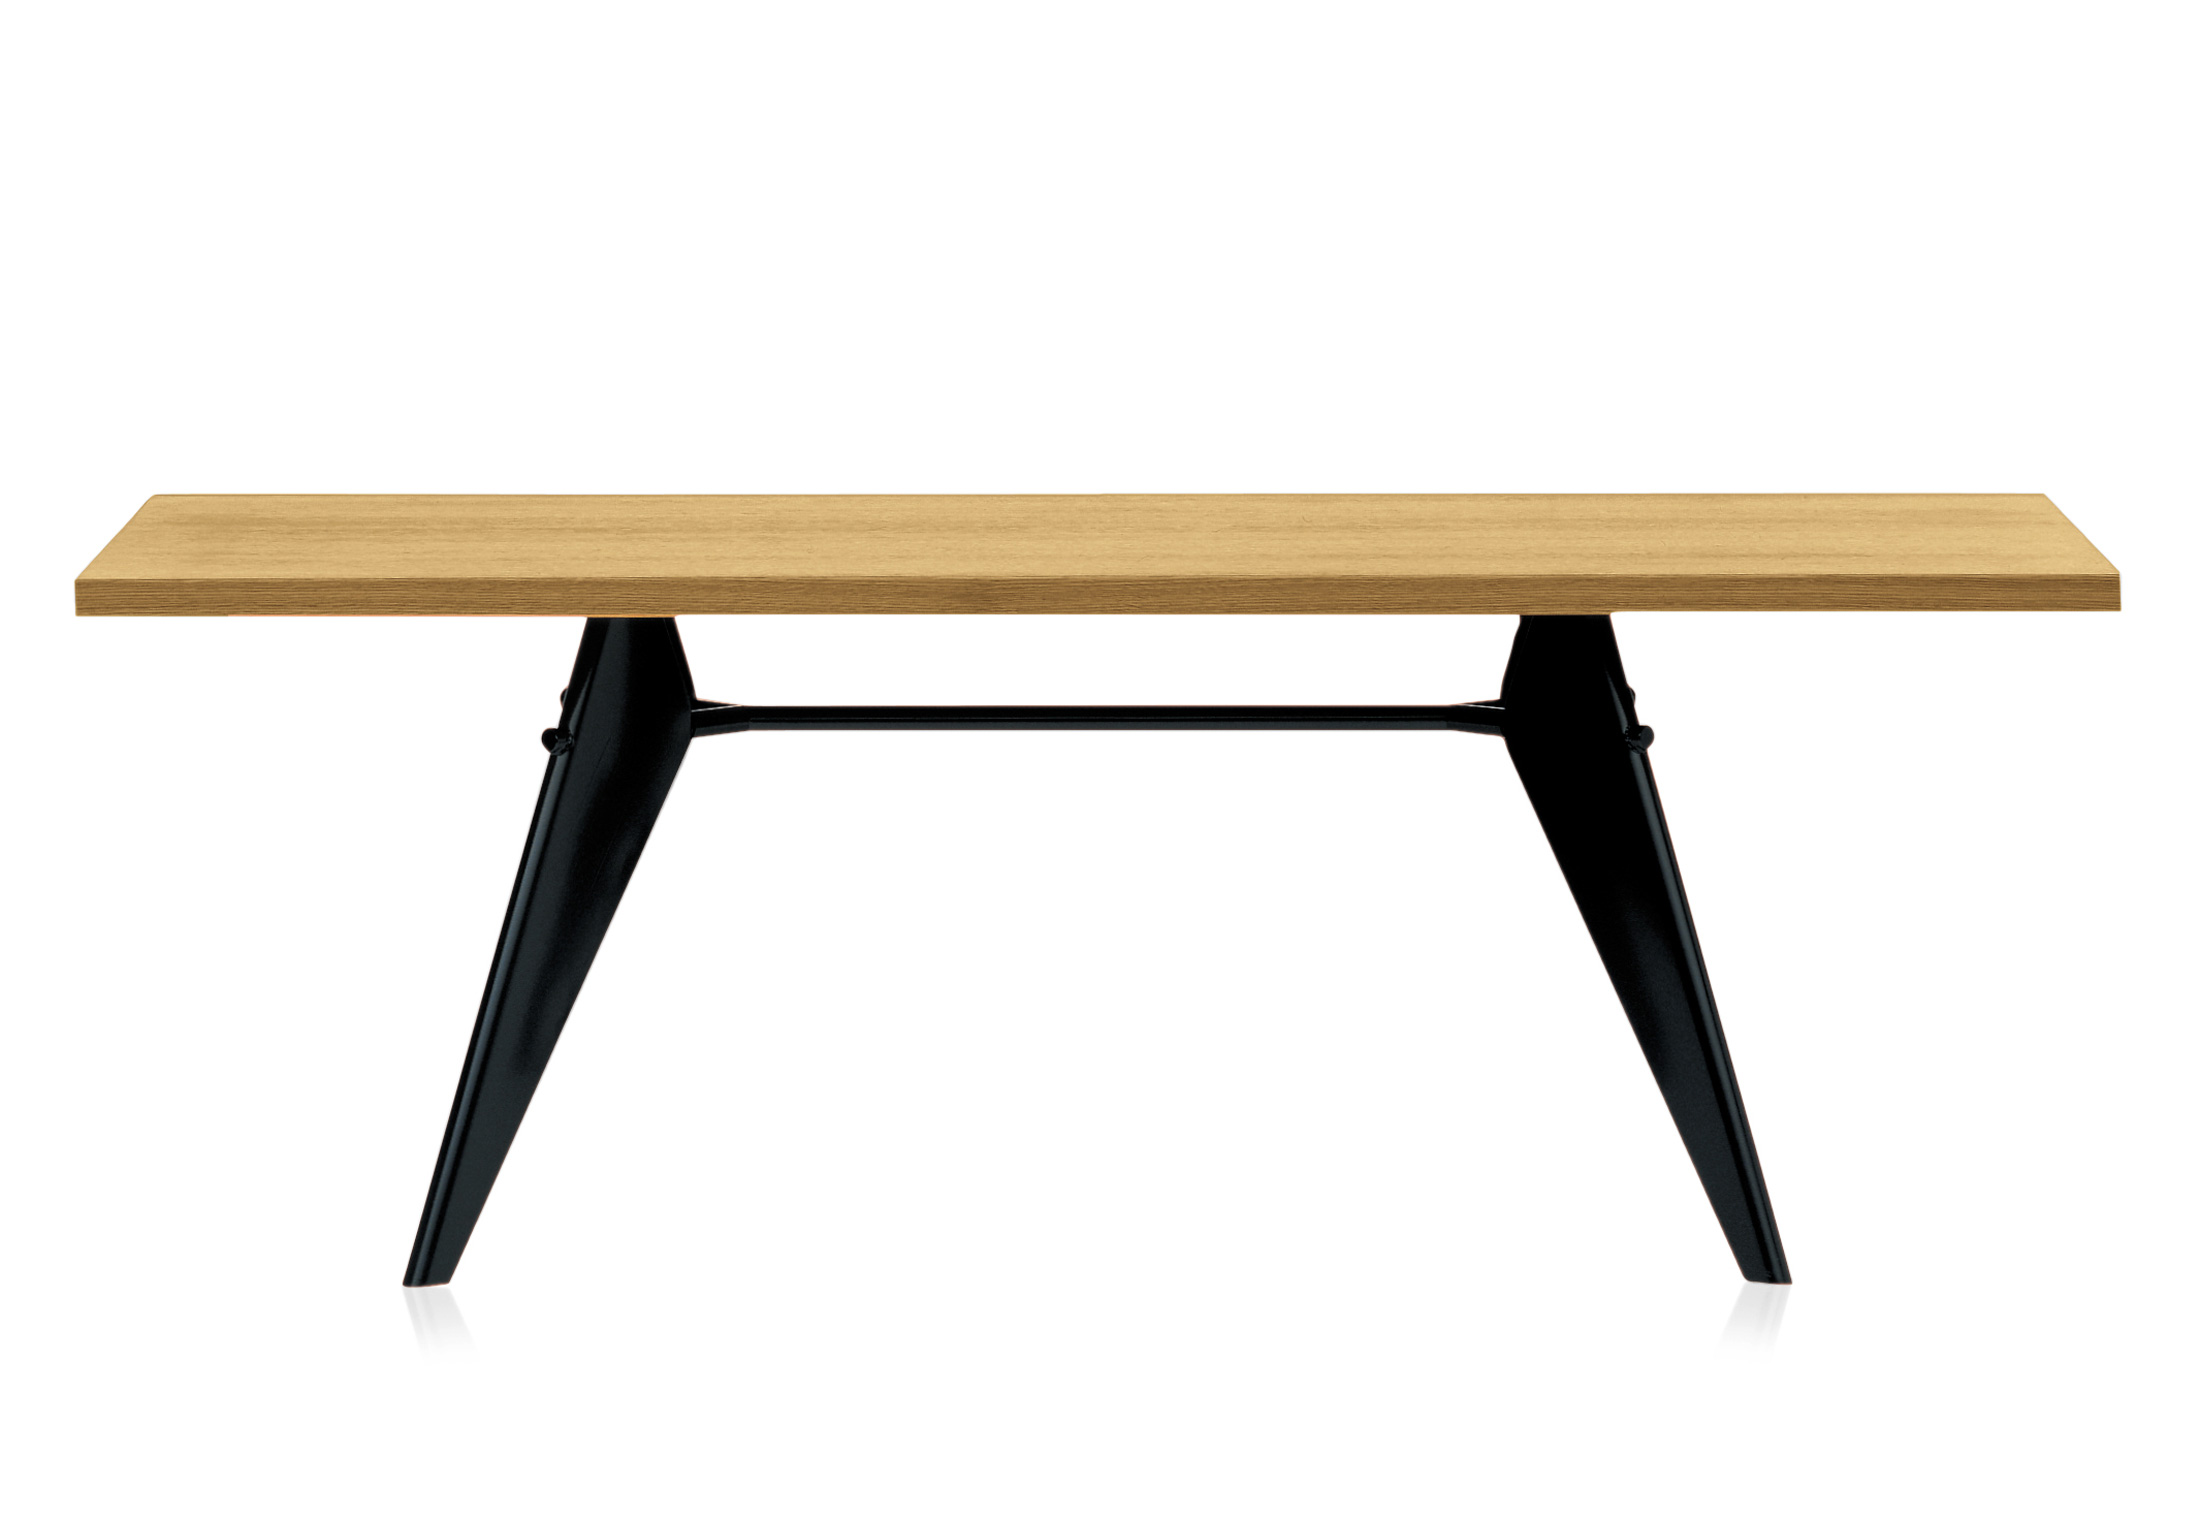 Timeless Design EM Table by Jean Prouvé for Vitra